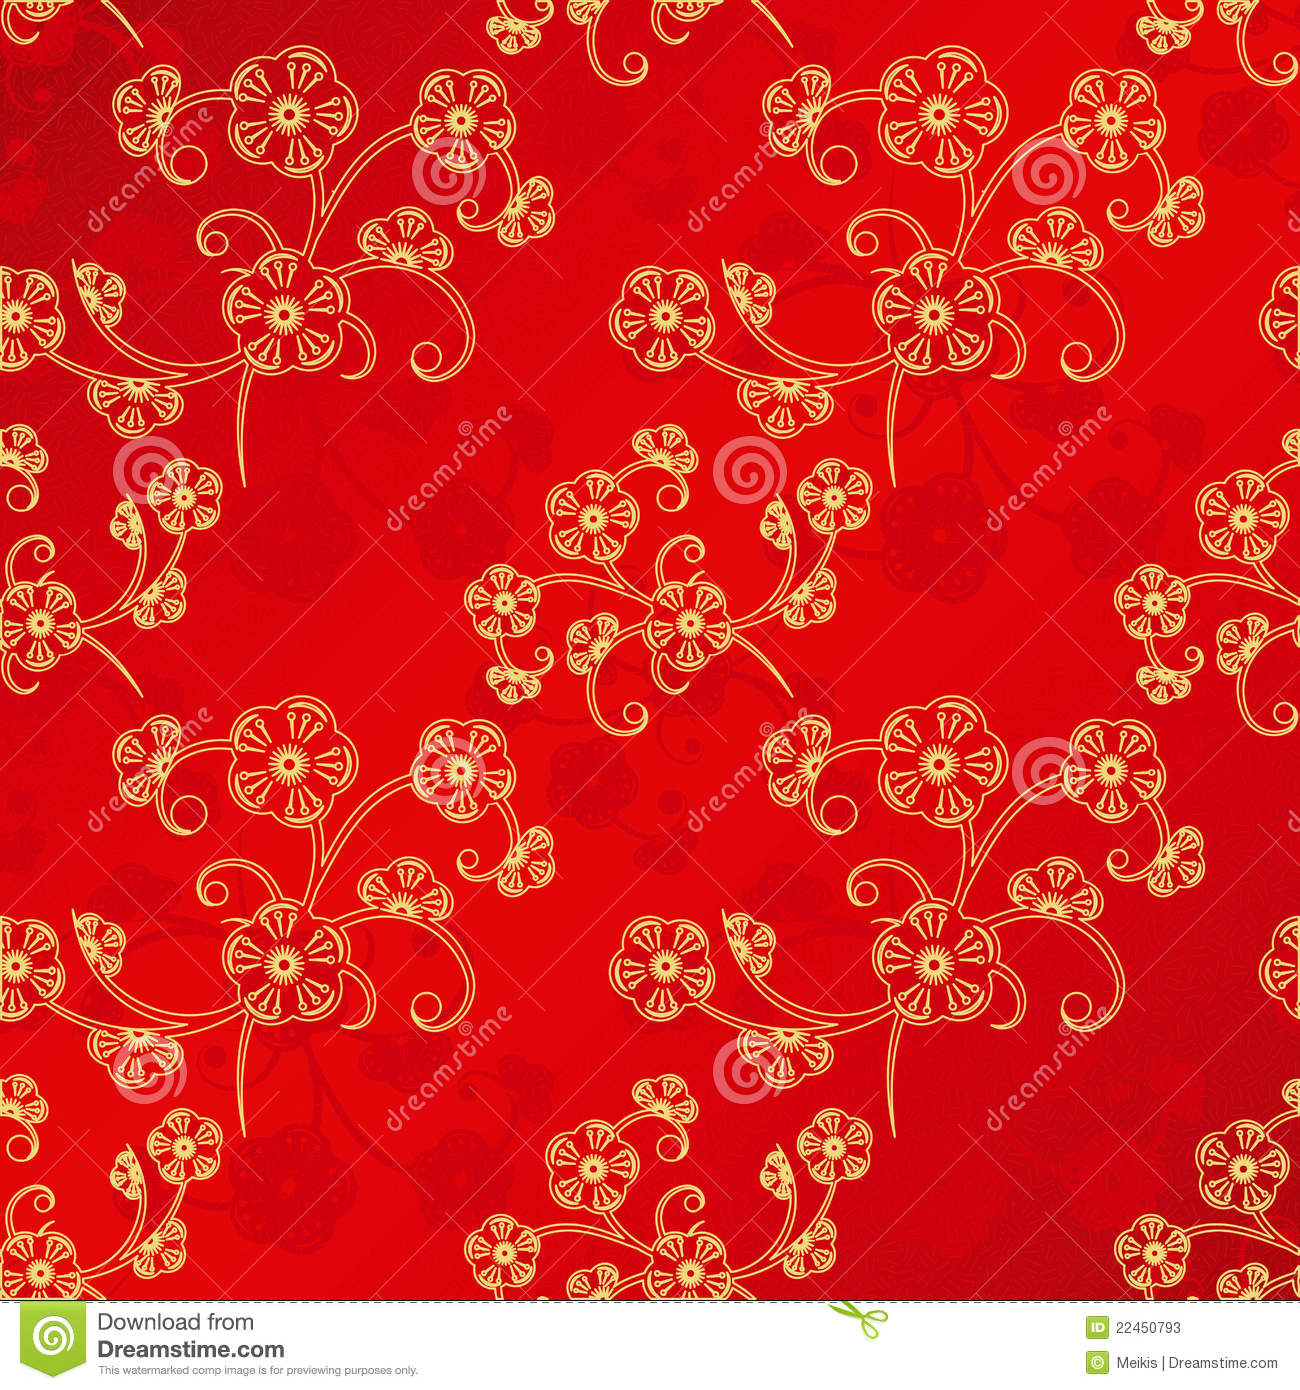 Http Www Dreamstime Com Stock Photos Oriental Chinese New Year Seamless Pattern Image22450793